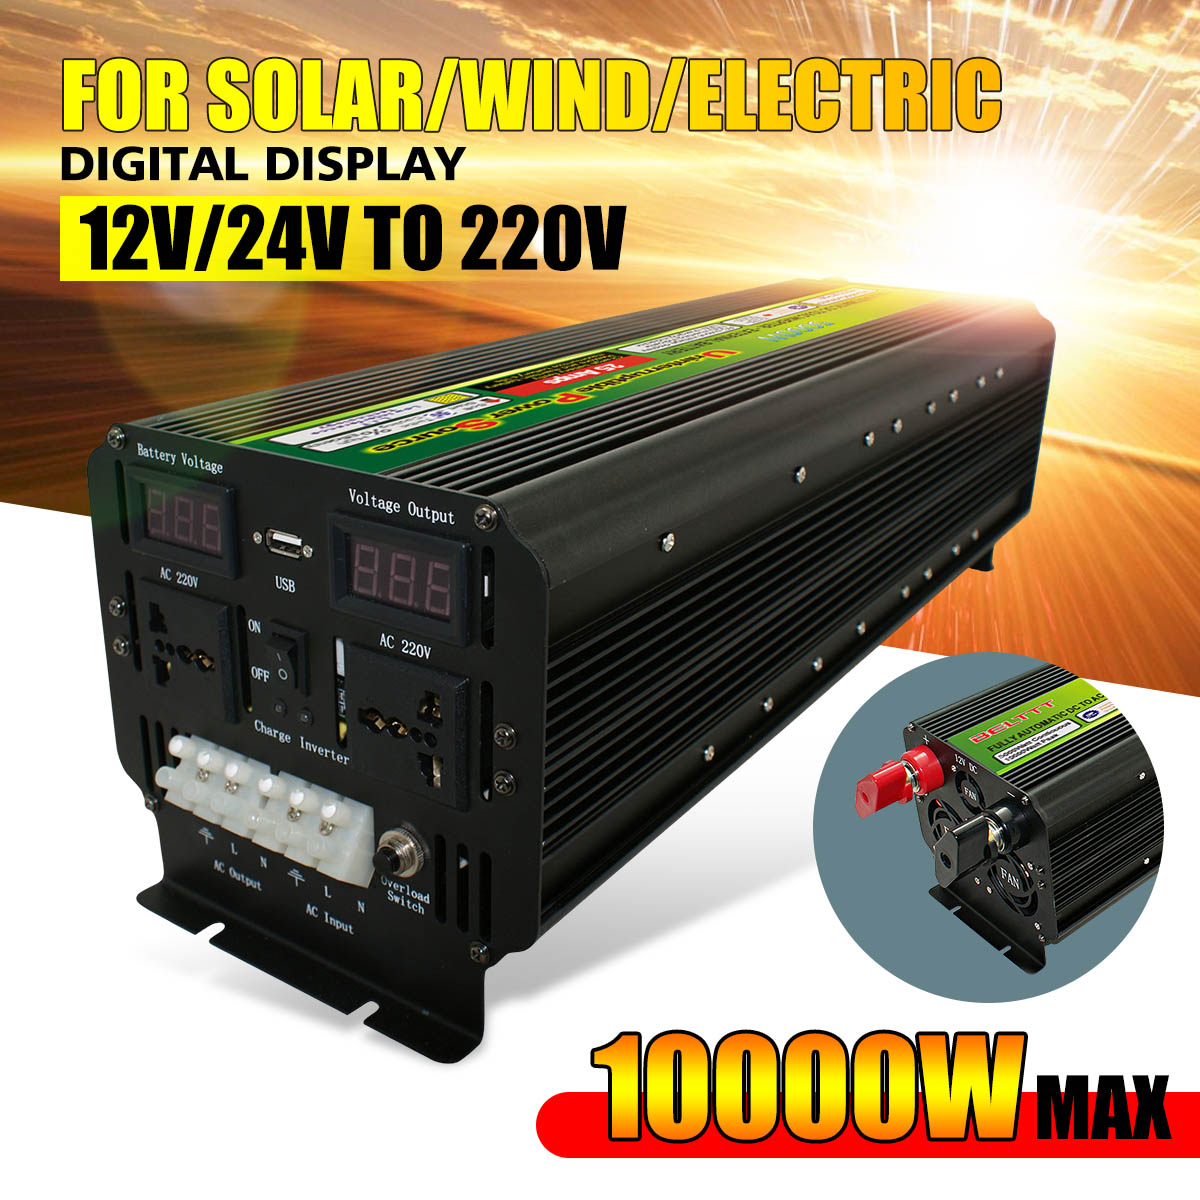 10000W(Peak) 12/24V To 220V UPS Power Inverter for Solar/Wind Rechargeable LCD display 5000Watt Modified Sine Wave Converter